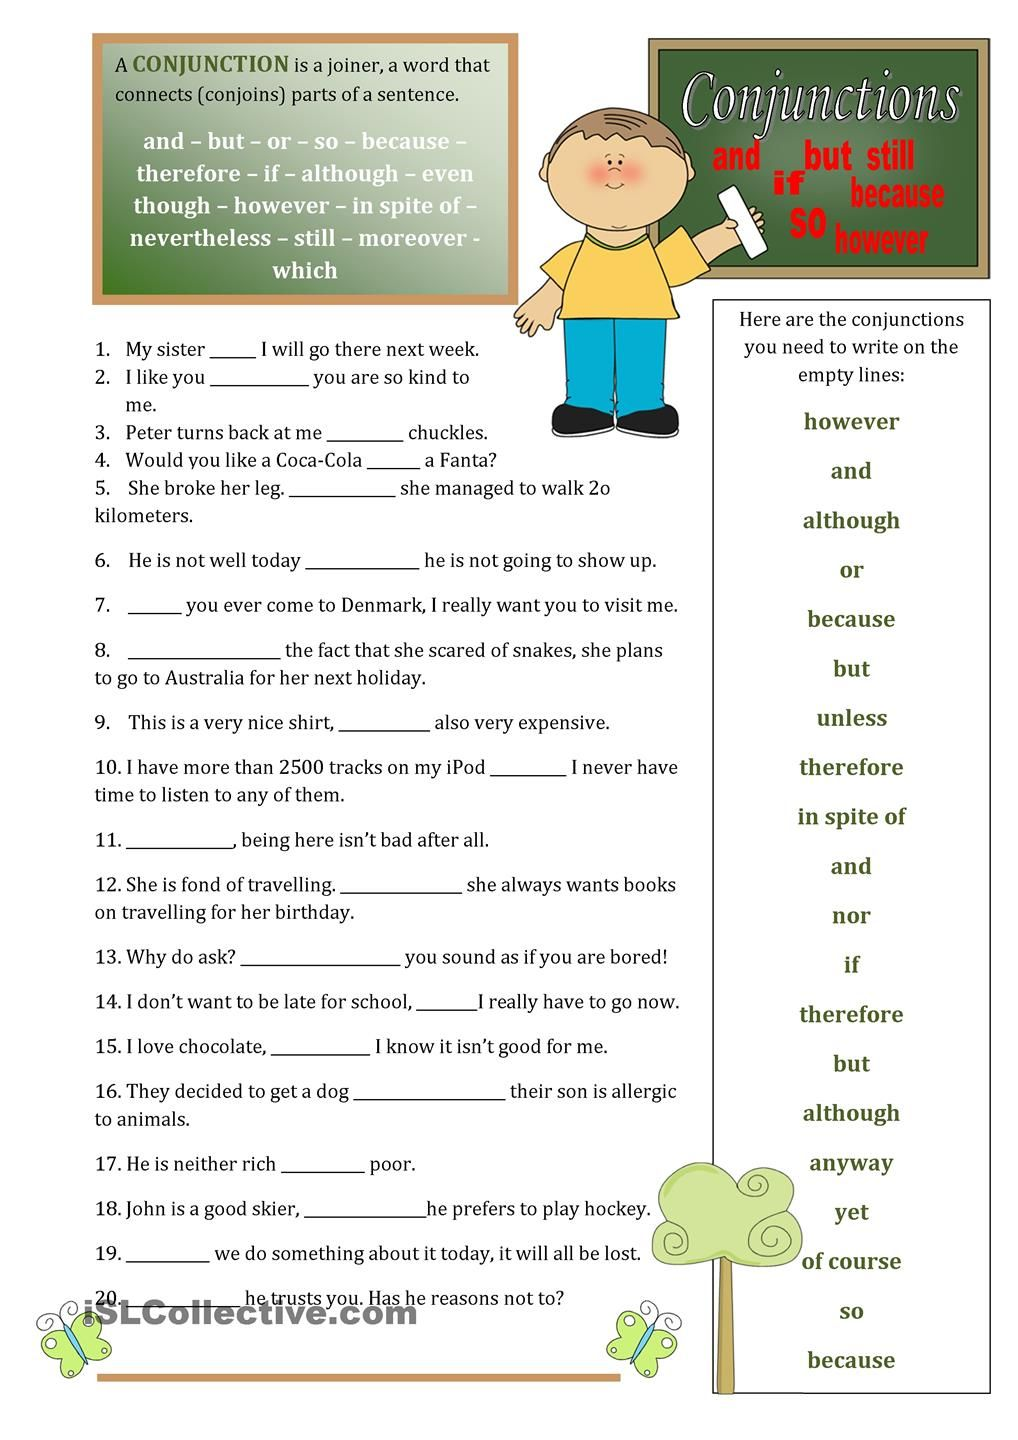 Conjunctions Linking Words Conjunctions English Worksheets For Kids [ 1440 x 1018 Pixel ]